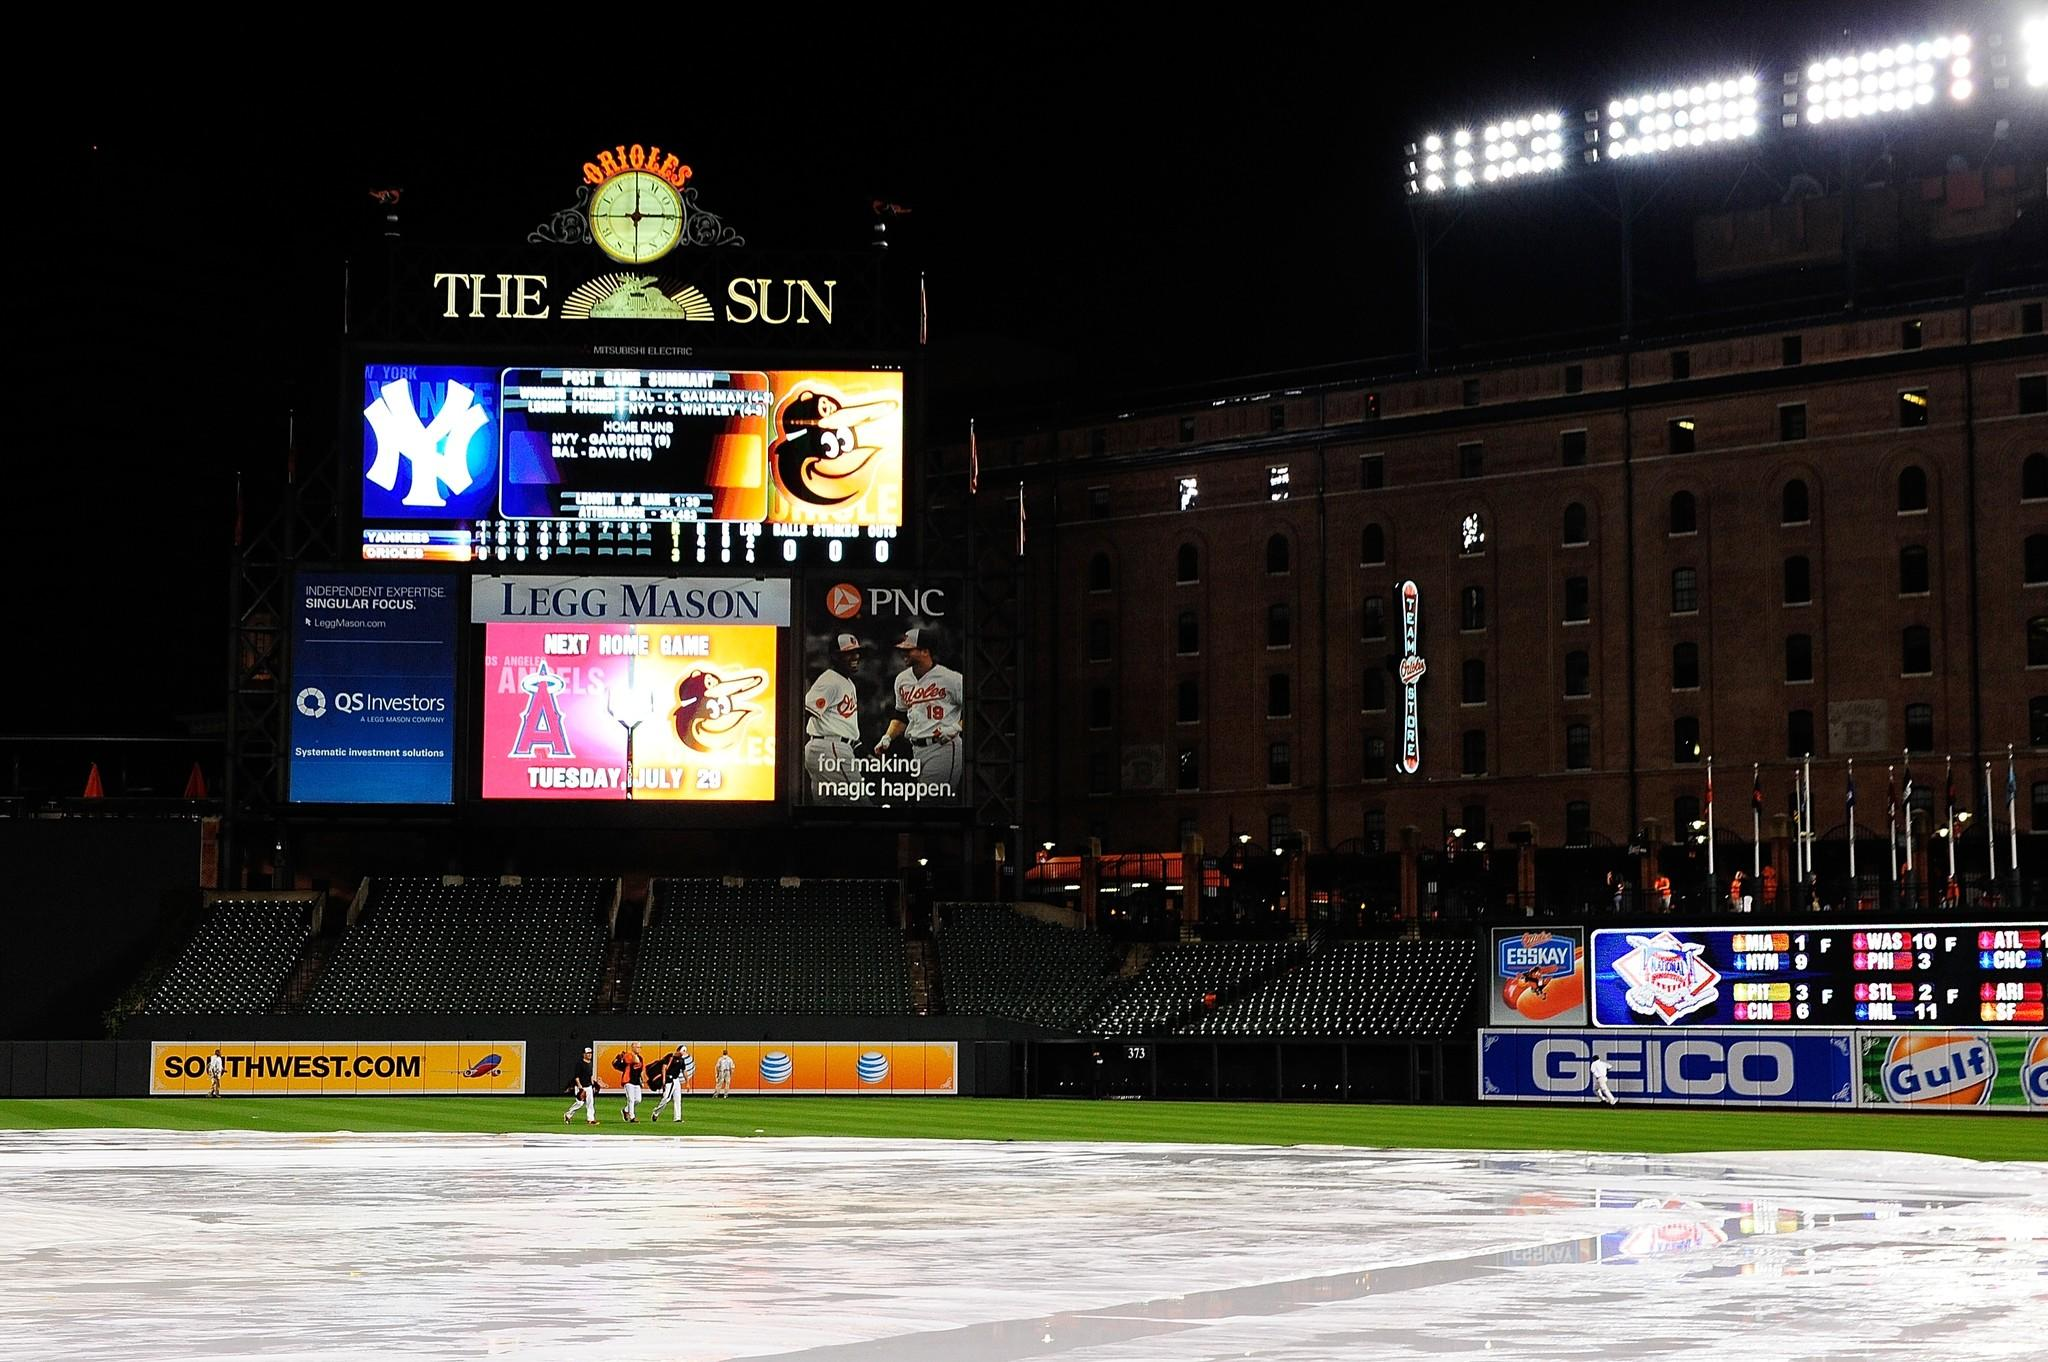 BALTIMORE, MD - JULY 14: Members of the Baltimore Orioles walk back to the dugout after a game against the New York Yankees was called due to rain at Oriole Park at Camden Yards on July 14, 2014 in Baltimore, Maryland. The Orioles defeated the Yankees 3-1.